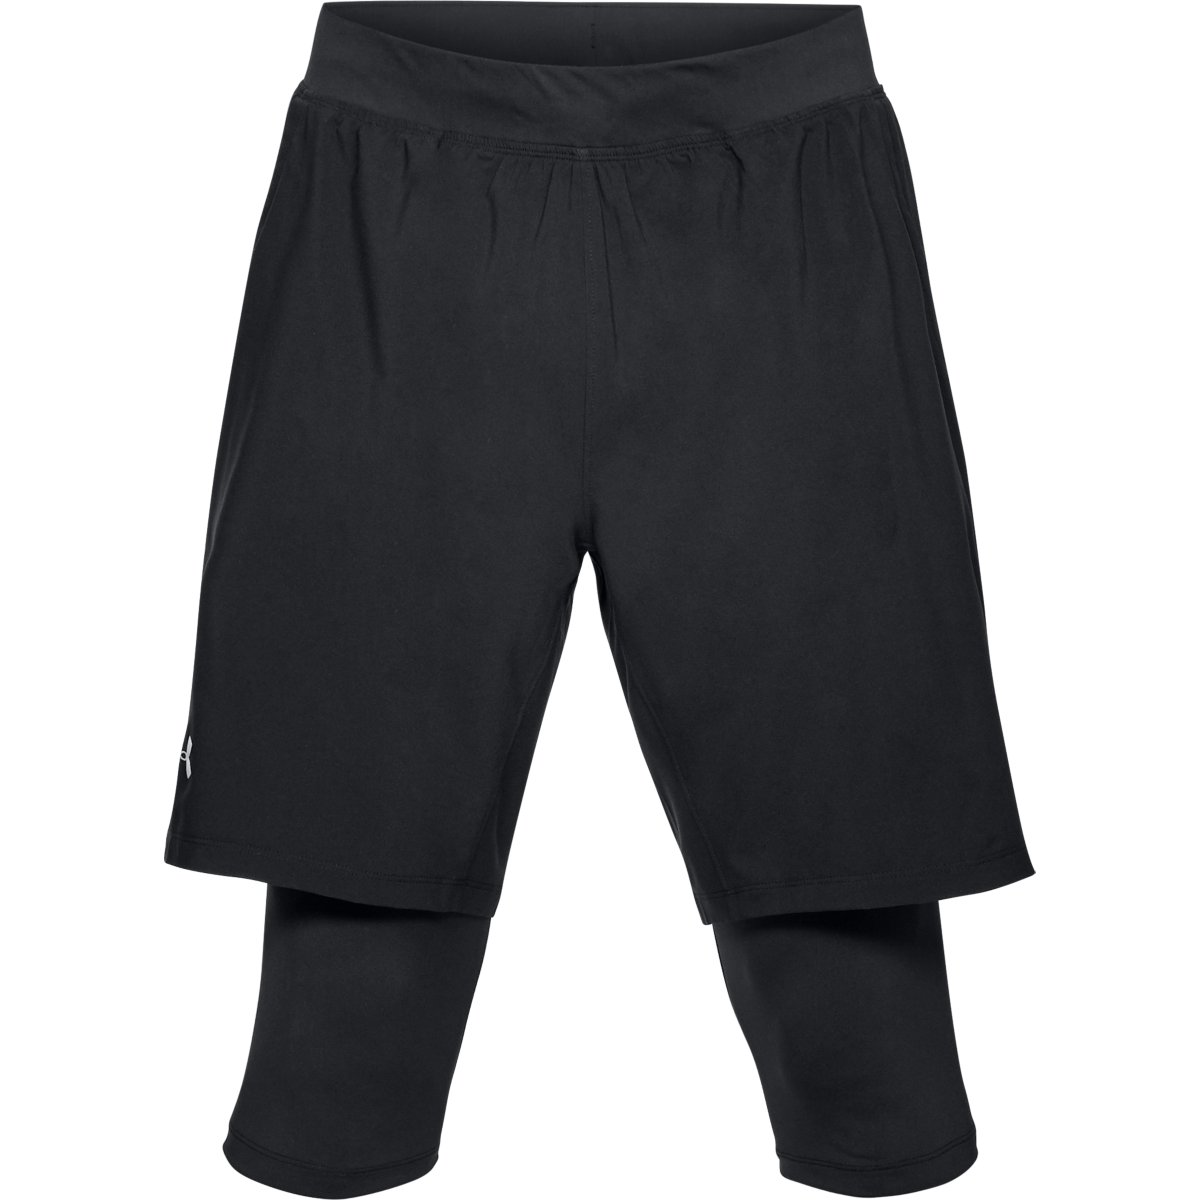 Under Armour Launch SW Long Run Short | Amour